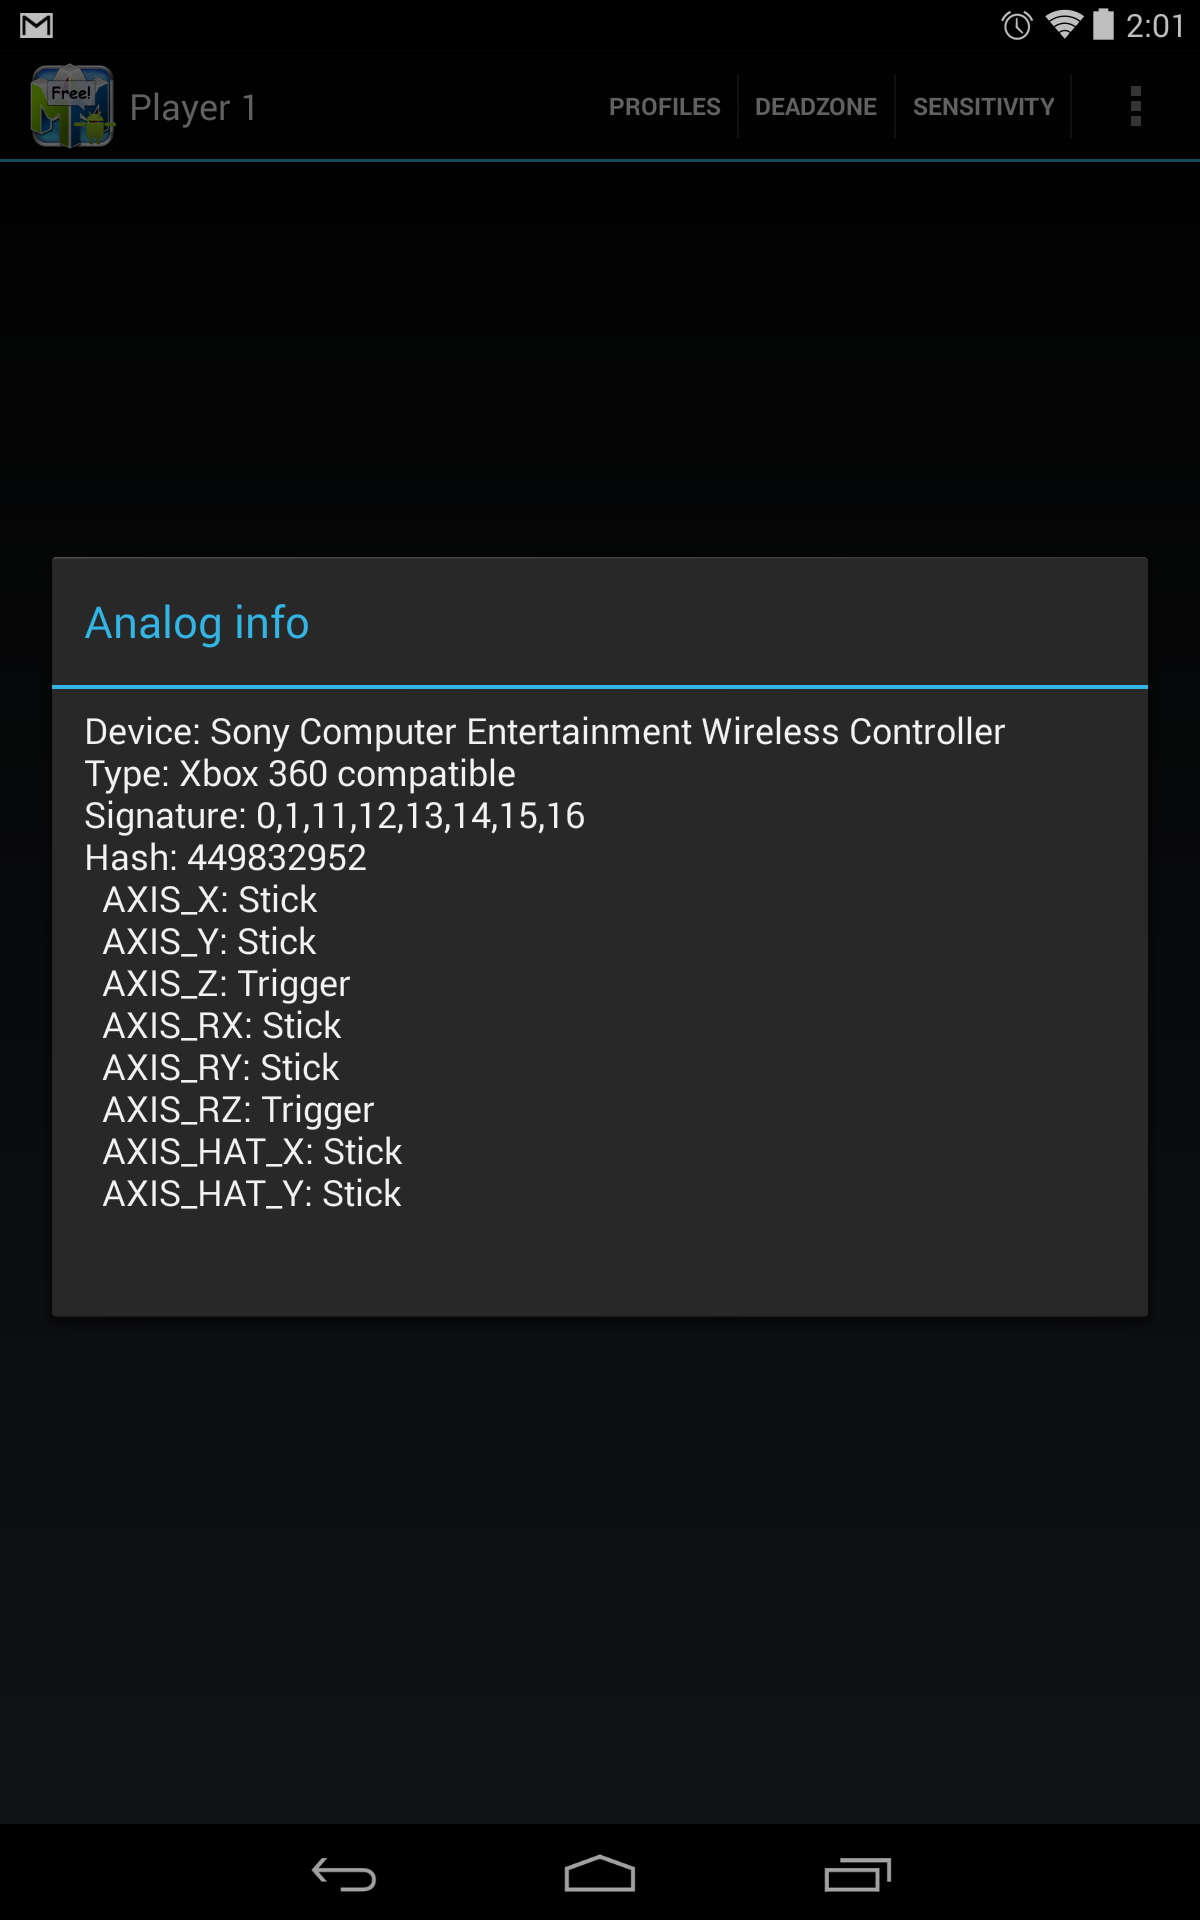 Recognizes DualShock 4 properly in Diagnostics, but does not